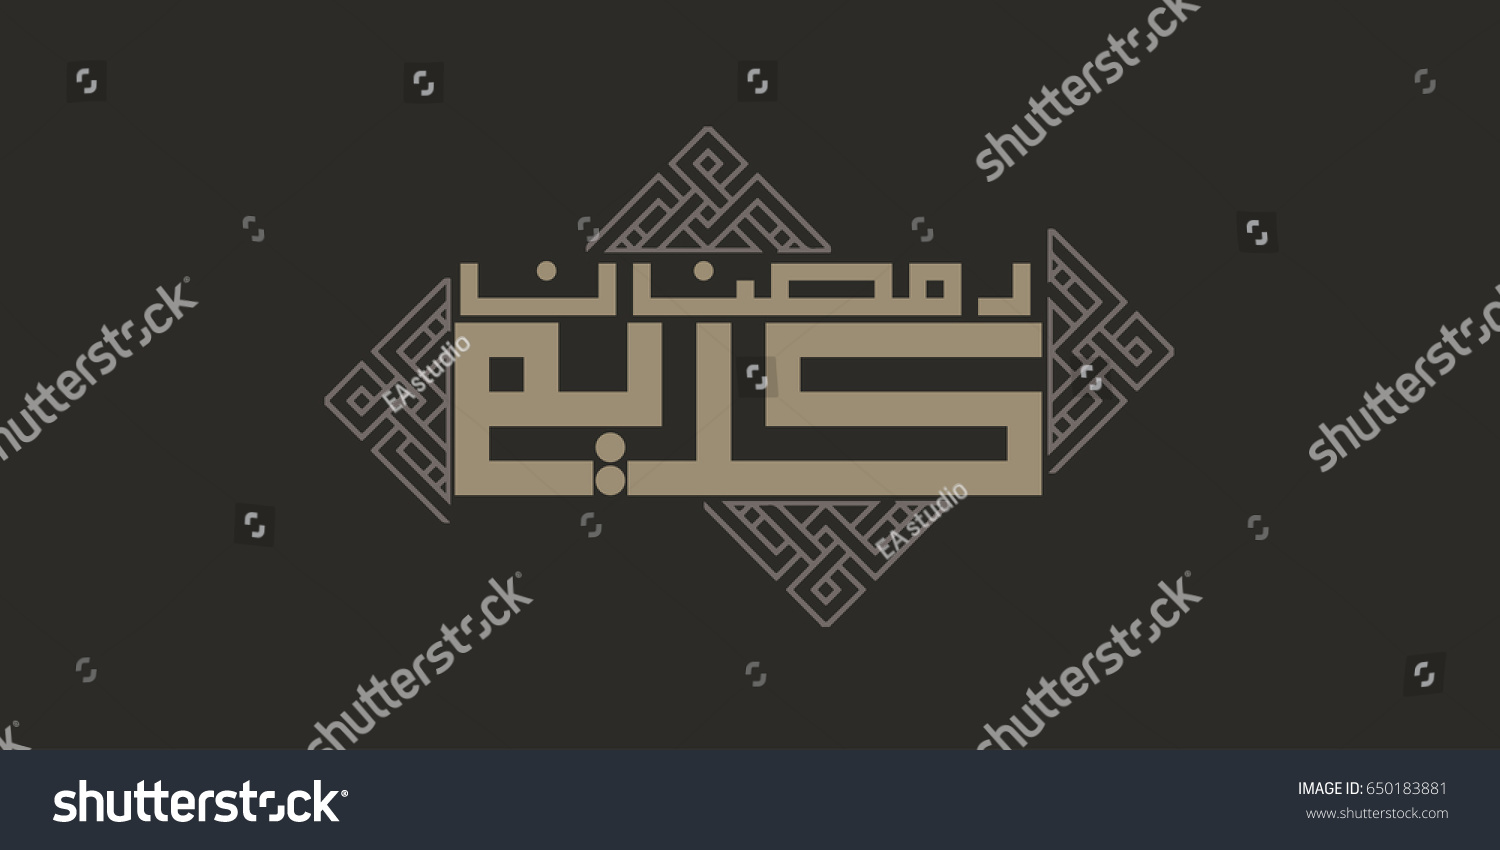 Arabic kufi calligraphy illustrating ramadan kareem stock vector